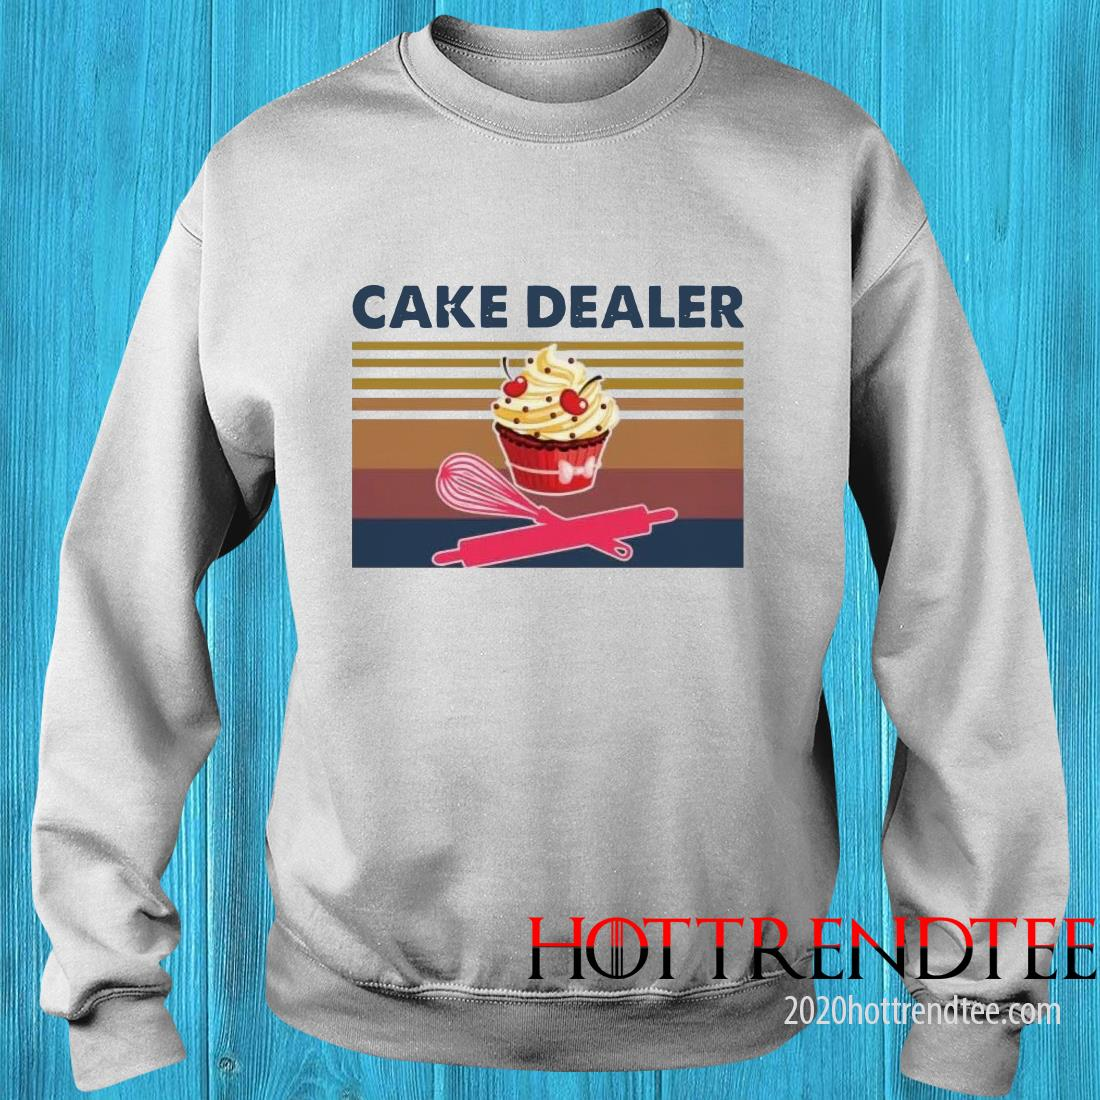 Cake Dealer Vintage Sweatshirt